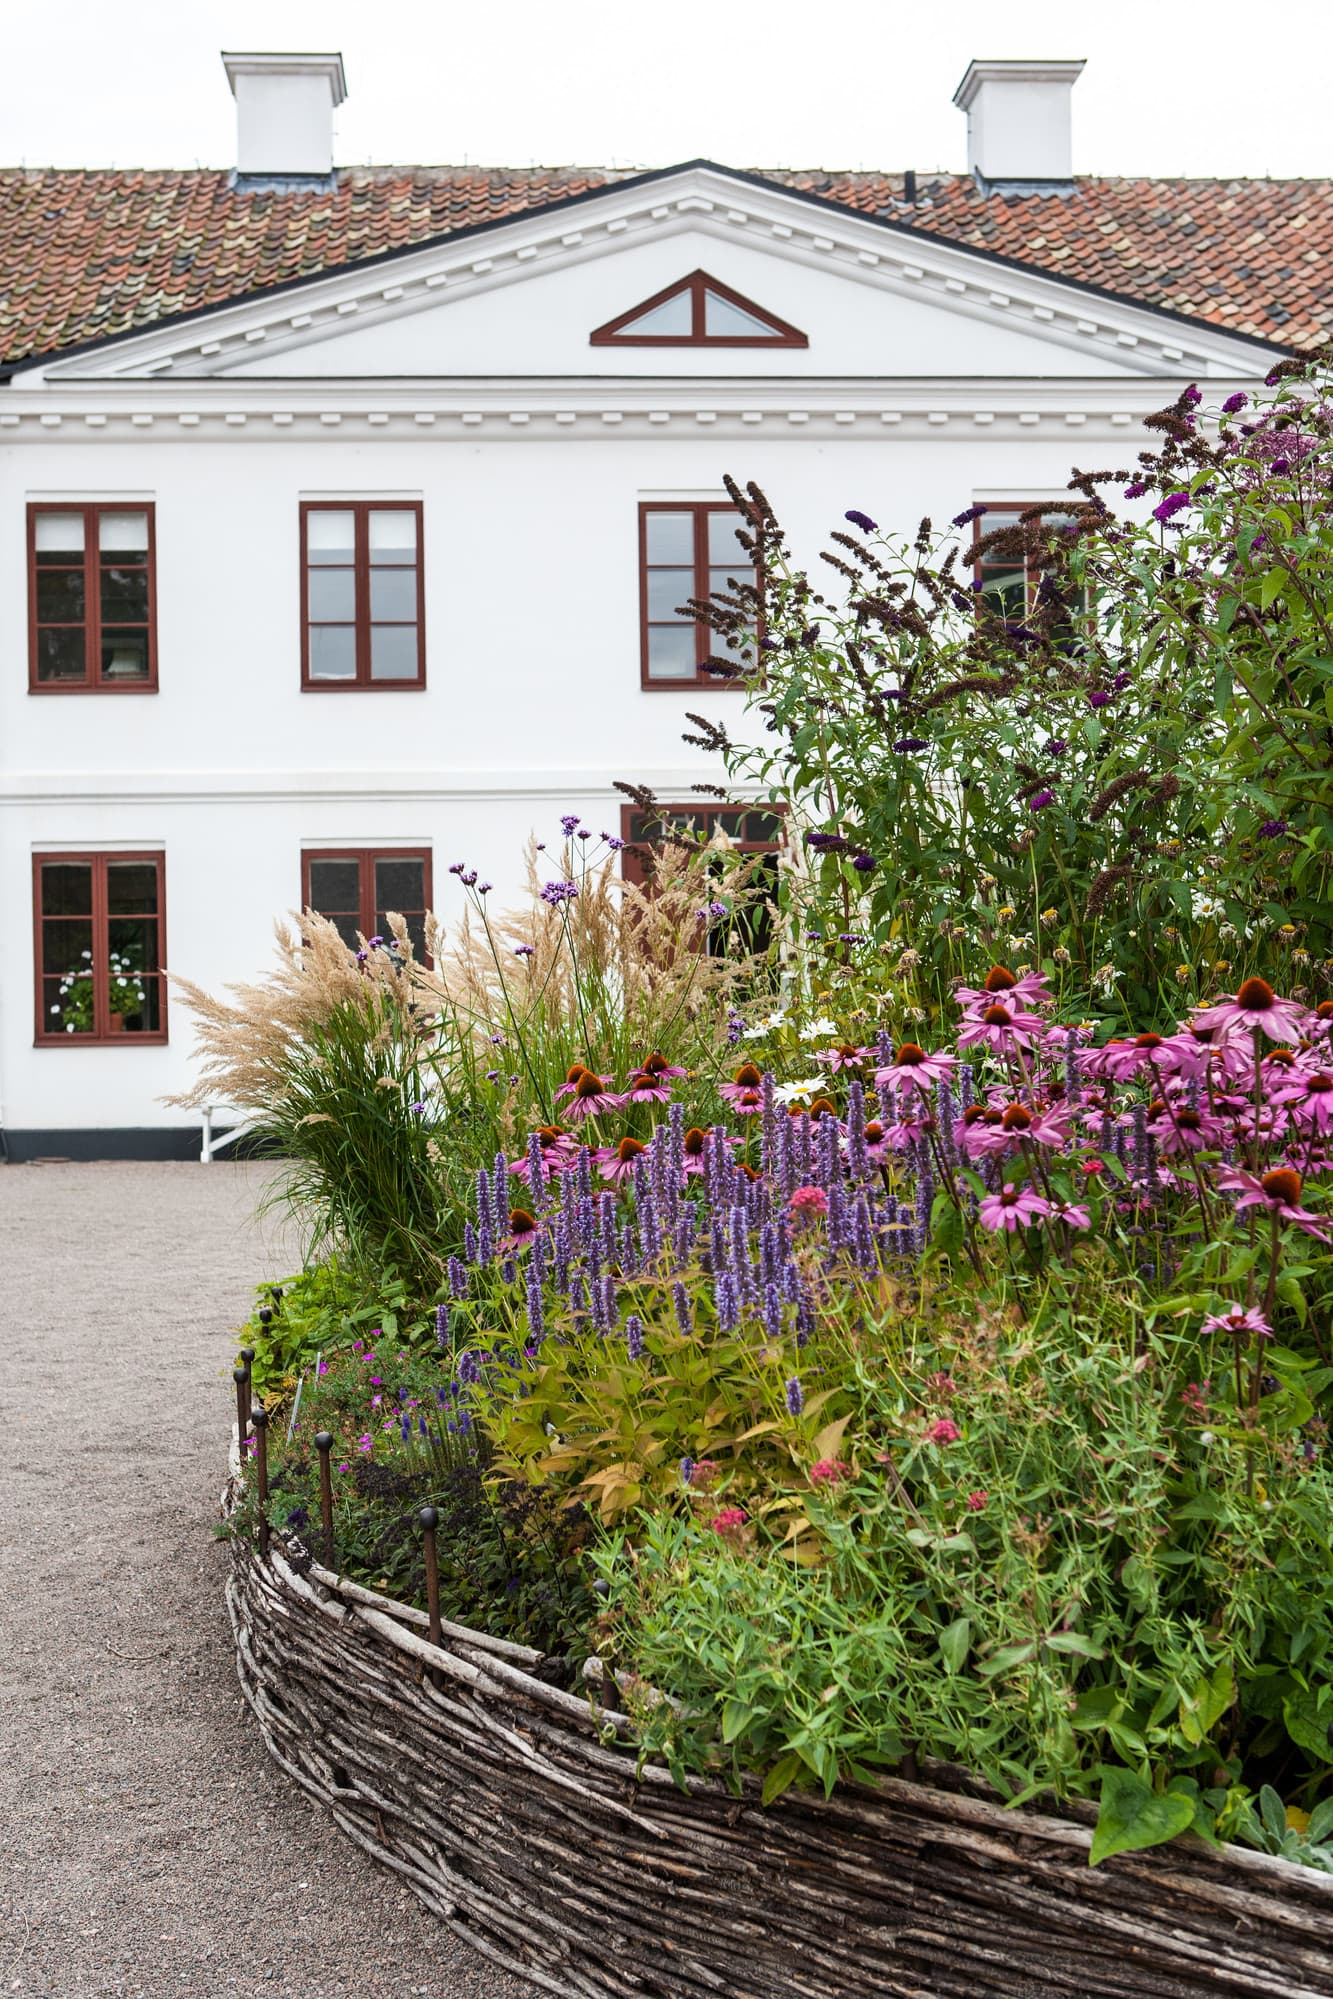 The manor house at Fredriksdal was originally built as a country estate.